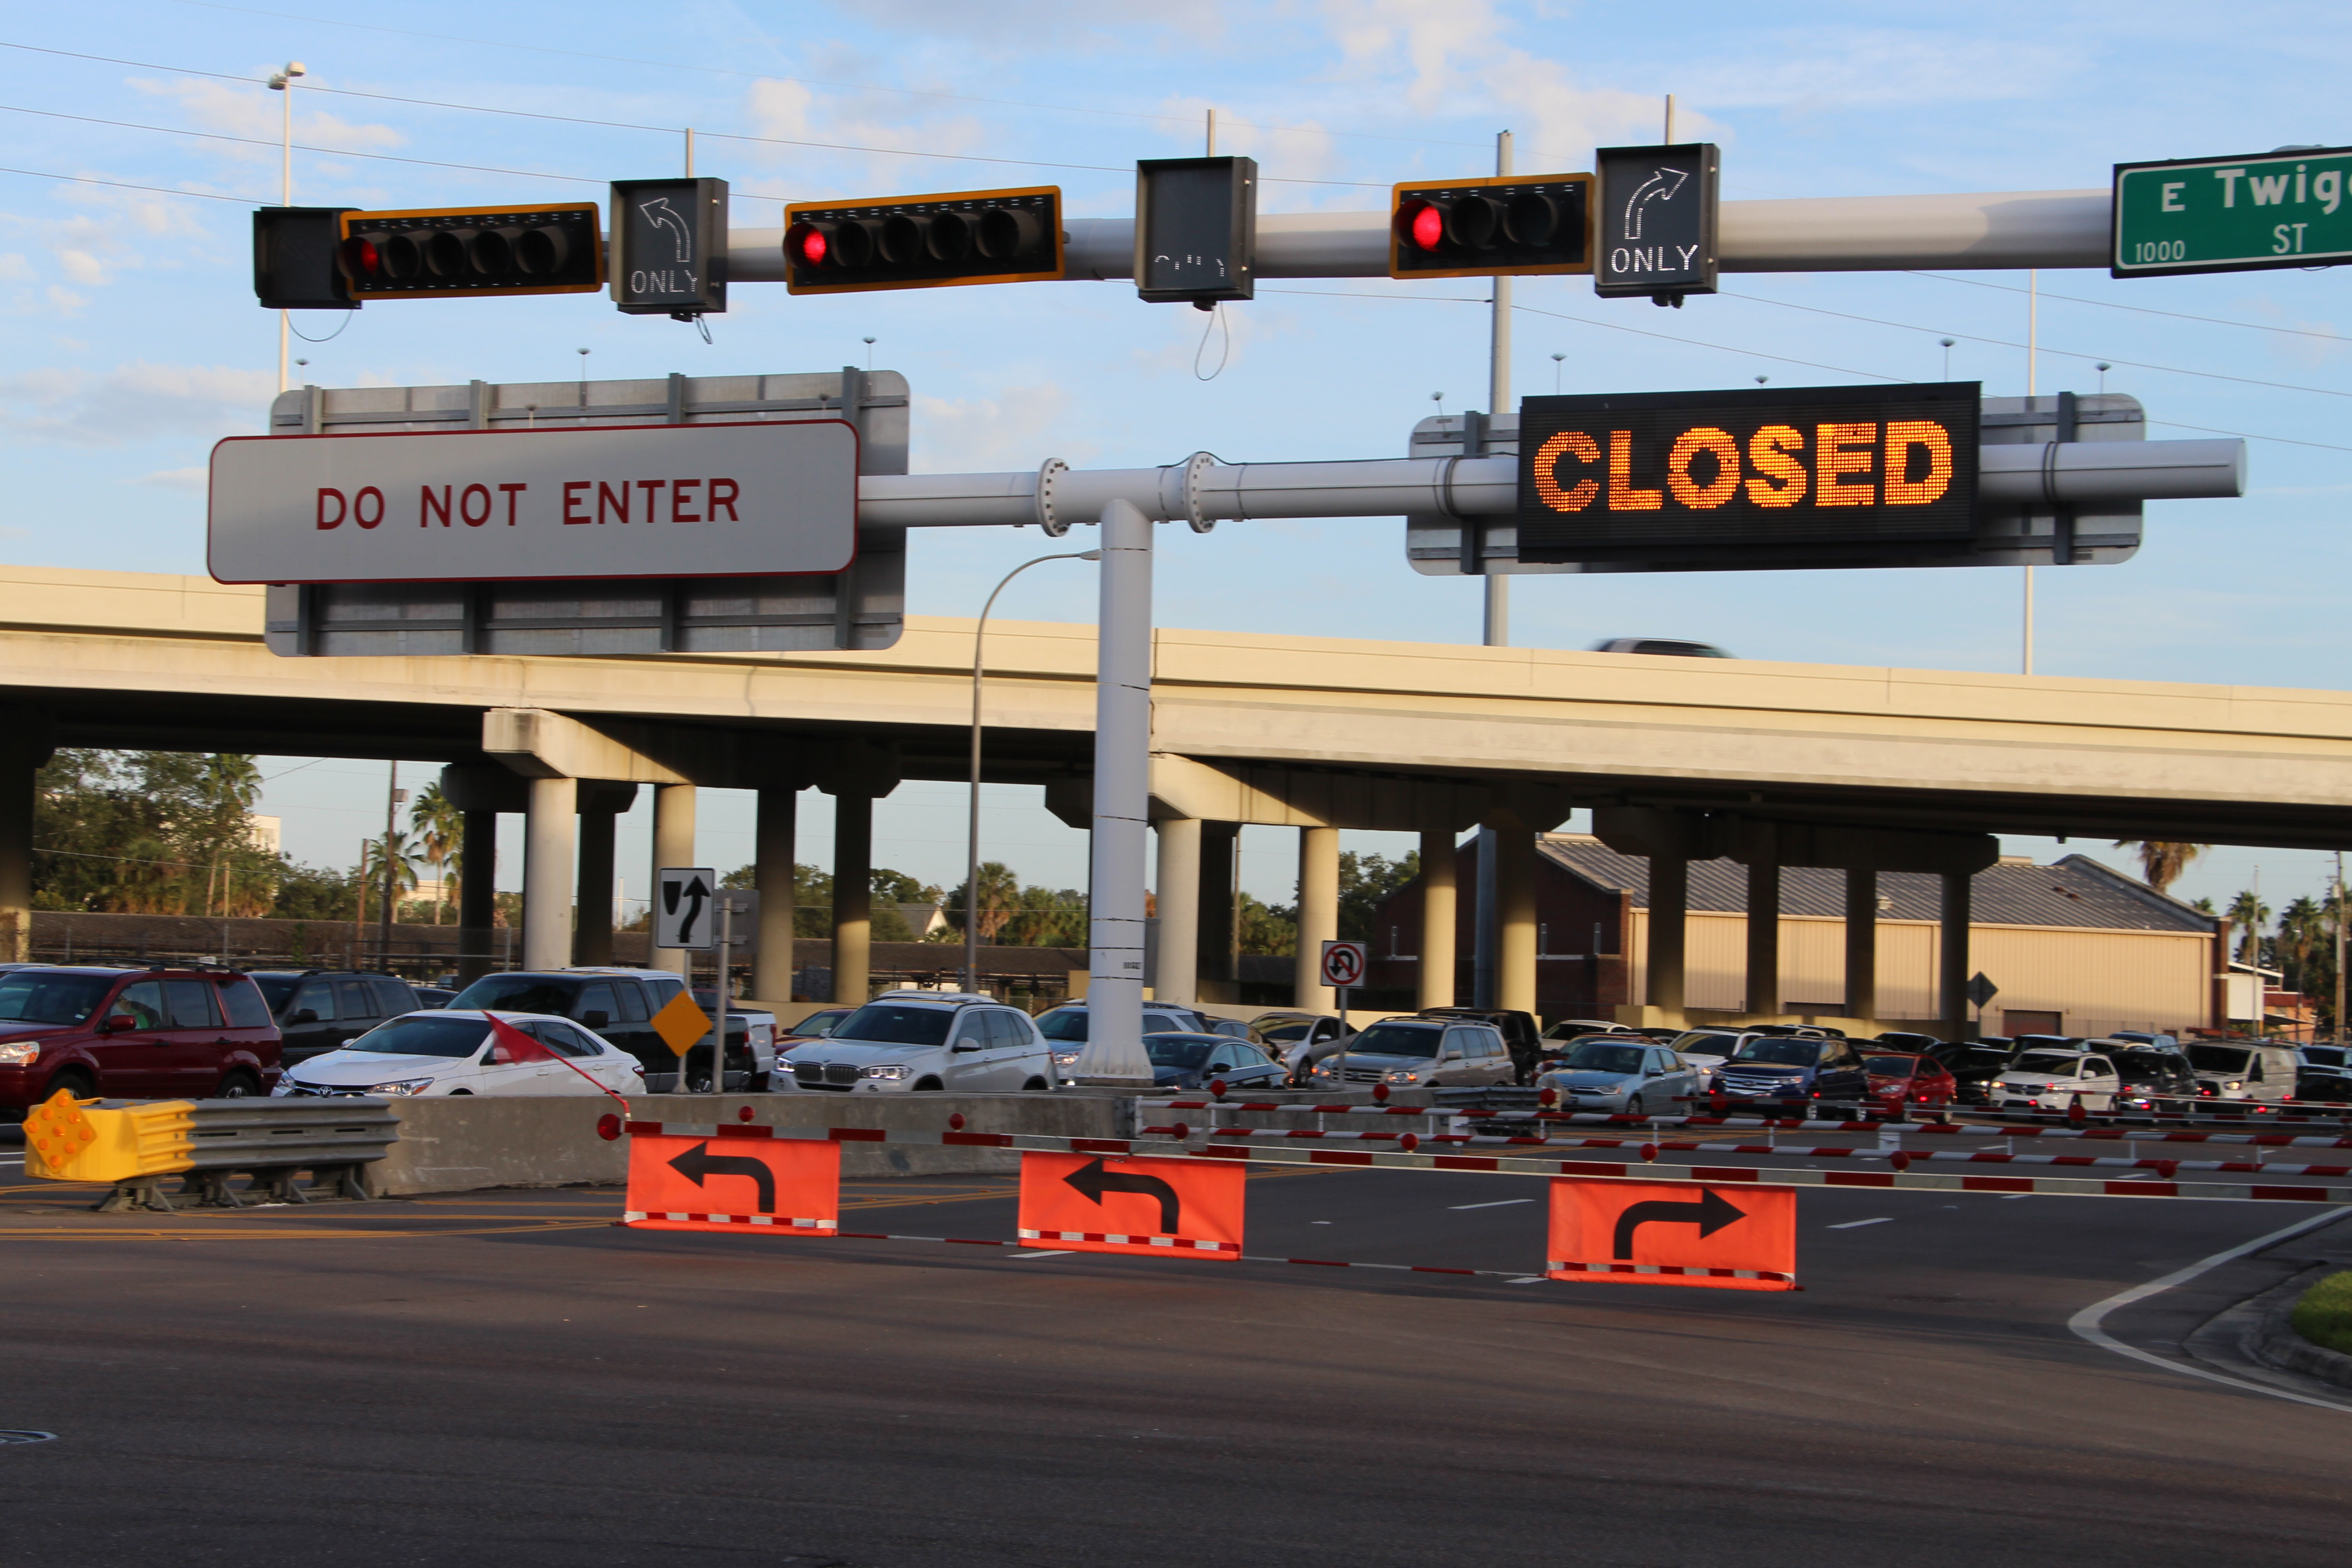 The downtown end of the Lee Roy Selmon Expressway's Reversible Express Lanes is a potential entry point for wrong-way drivers. CVs will receive warnings when a wrong-way driver is approaching.